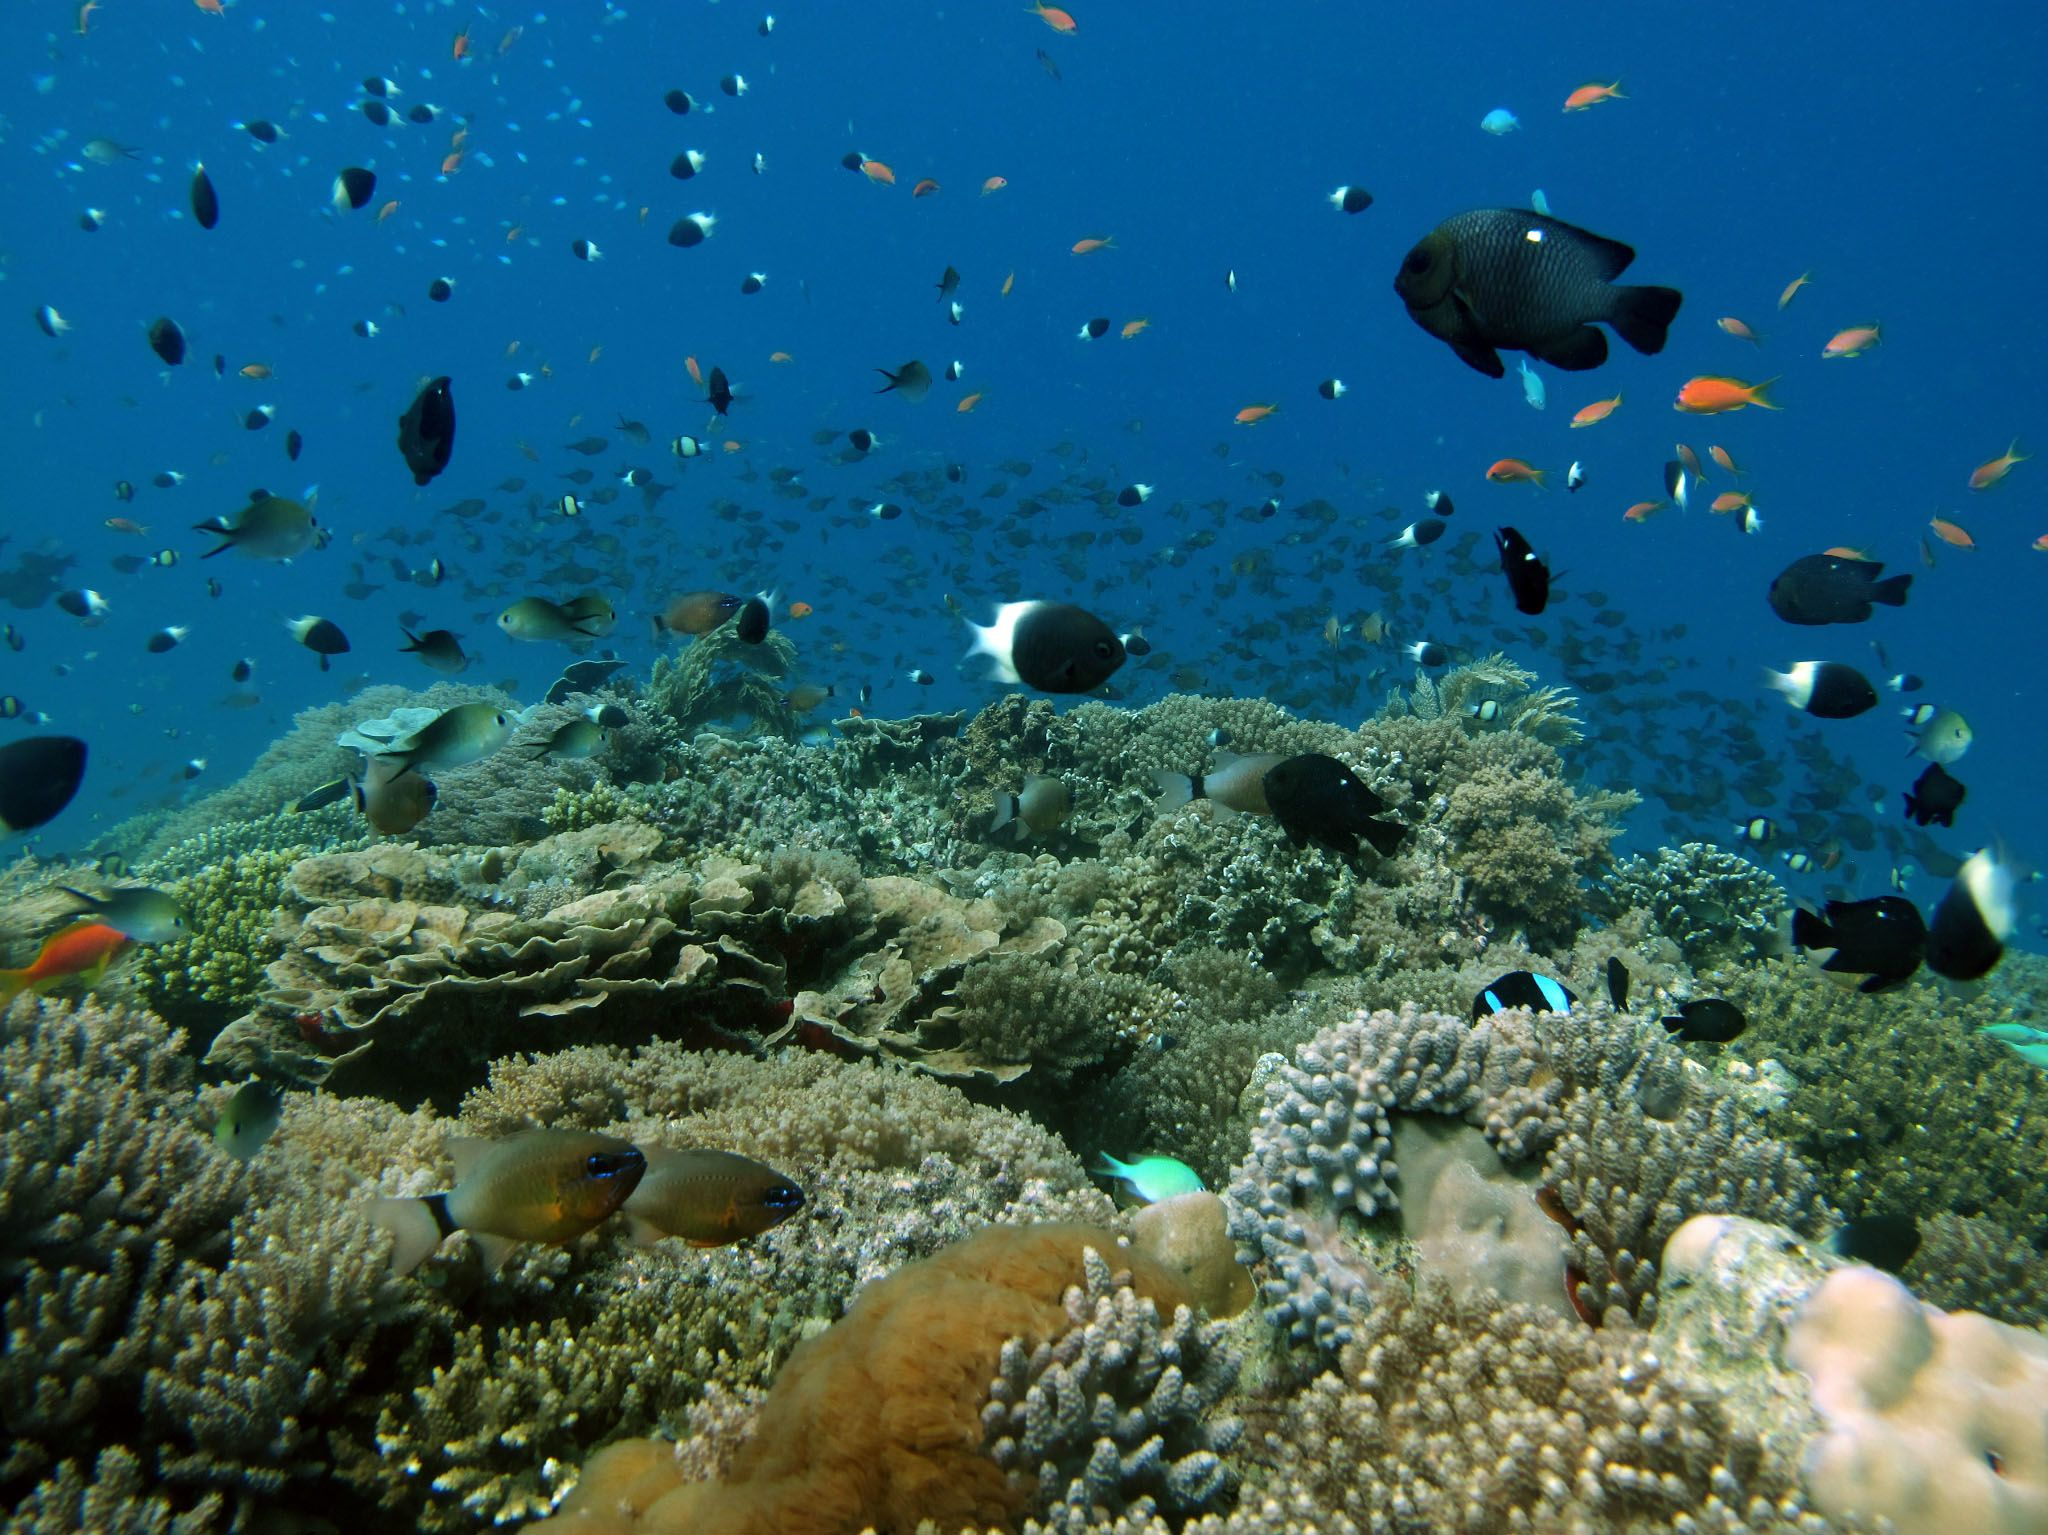 Maziwe Island, Tanzania - Reef of the island. This is from Jane Goodall: Saving Paradise. [Photo of the day - May 2021]